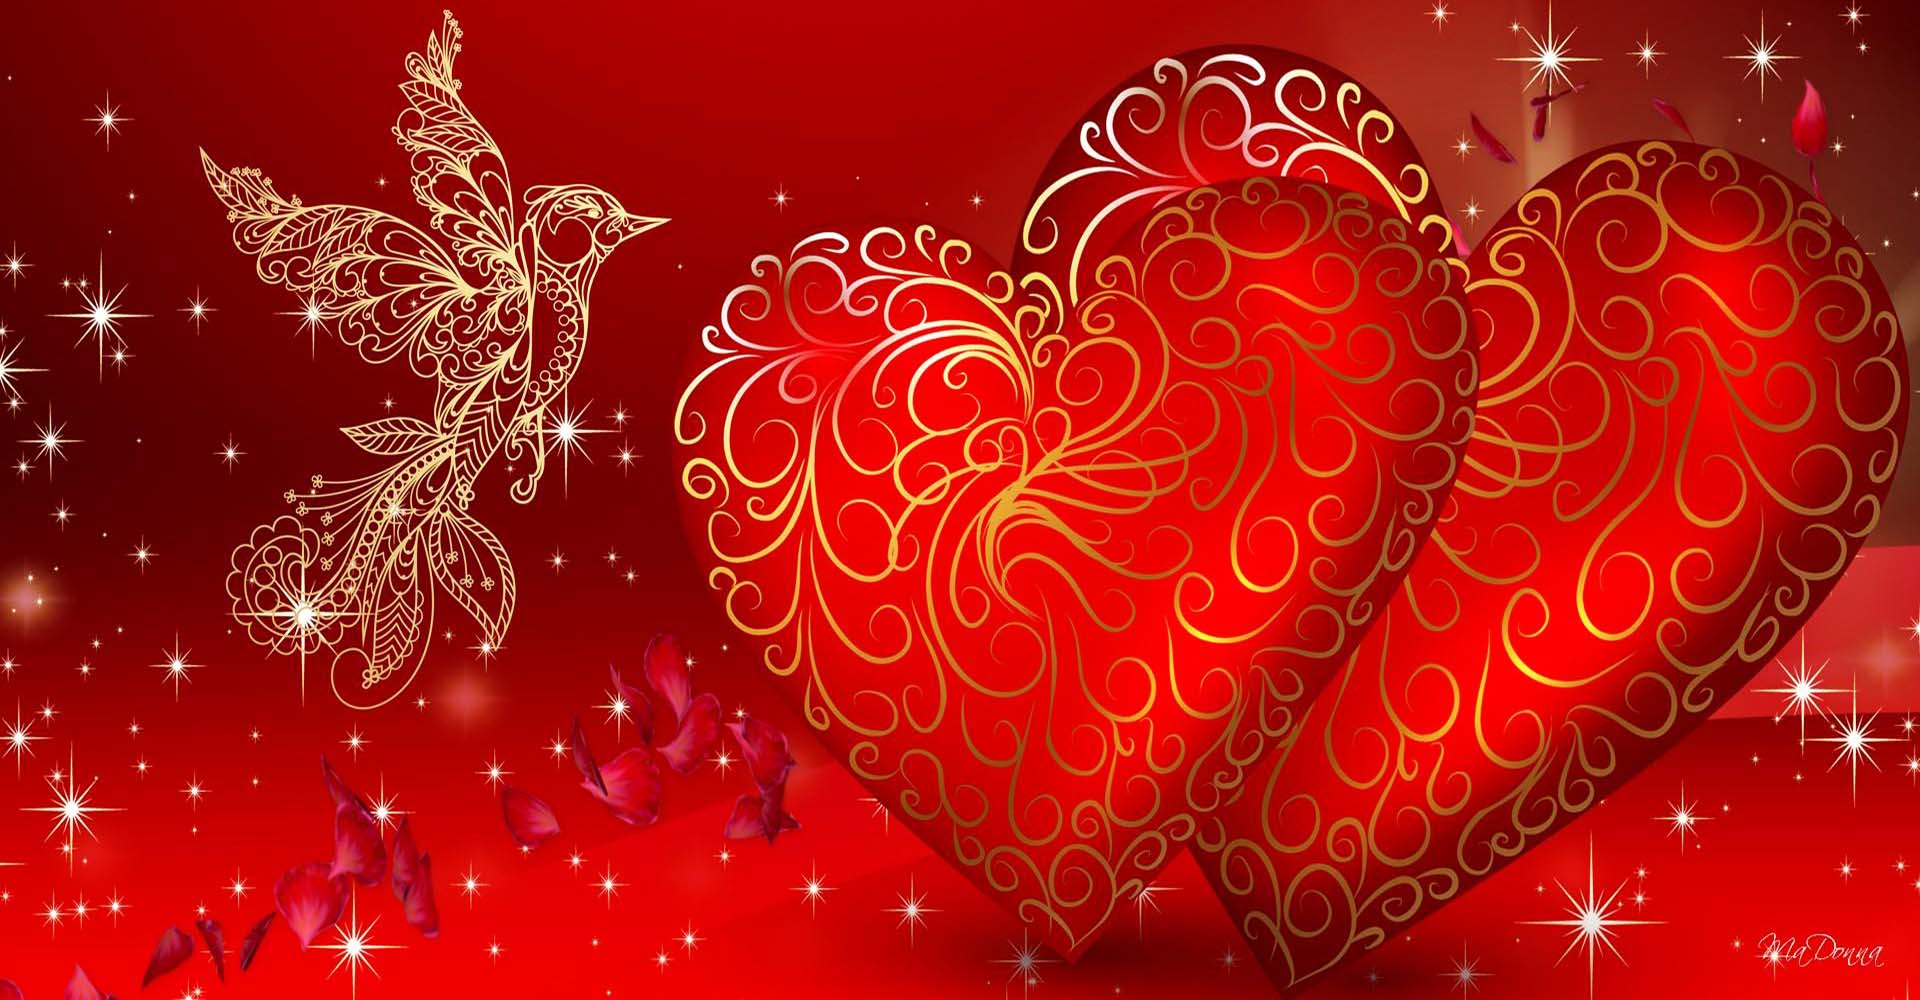 Love Wallpaper P Name : Love Heart Wallpapers 2016 - Wallpaper cave